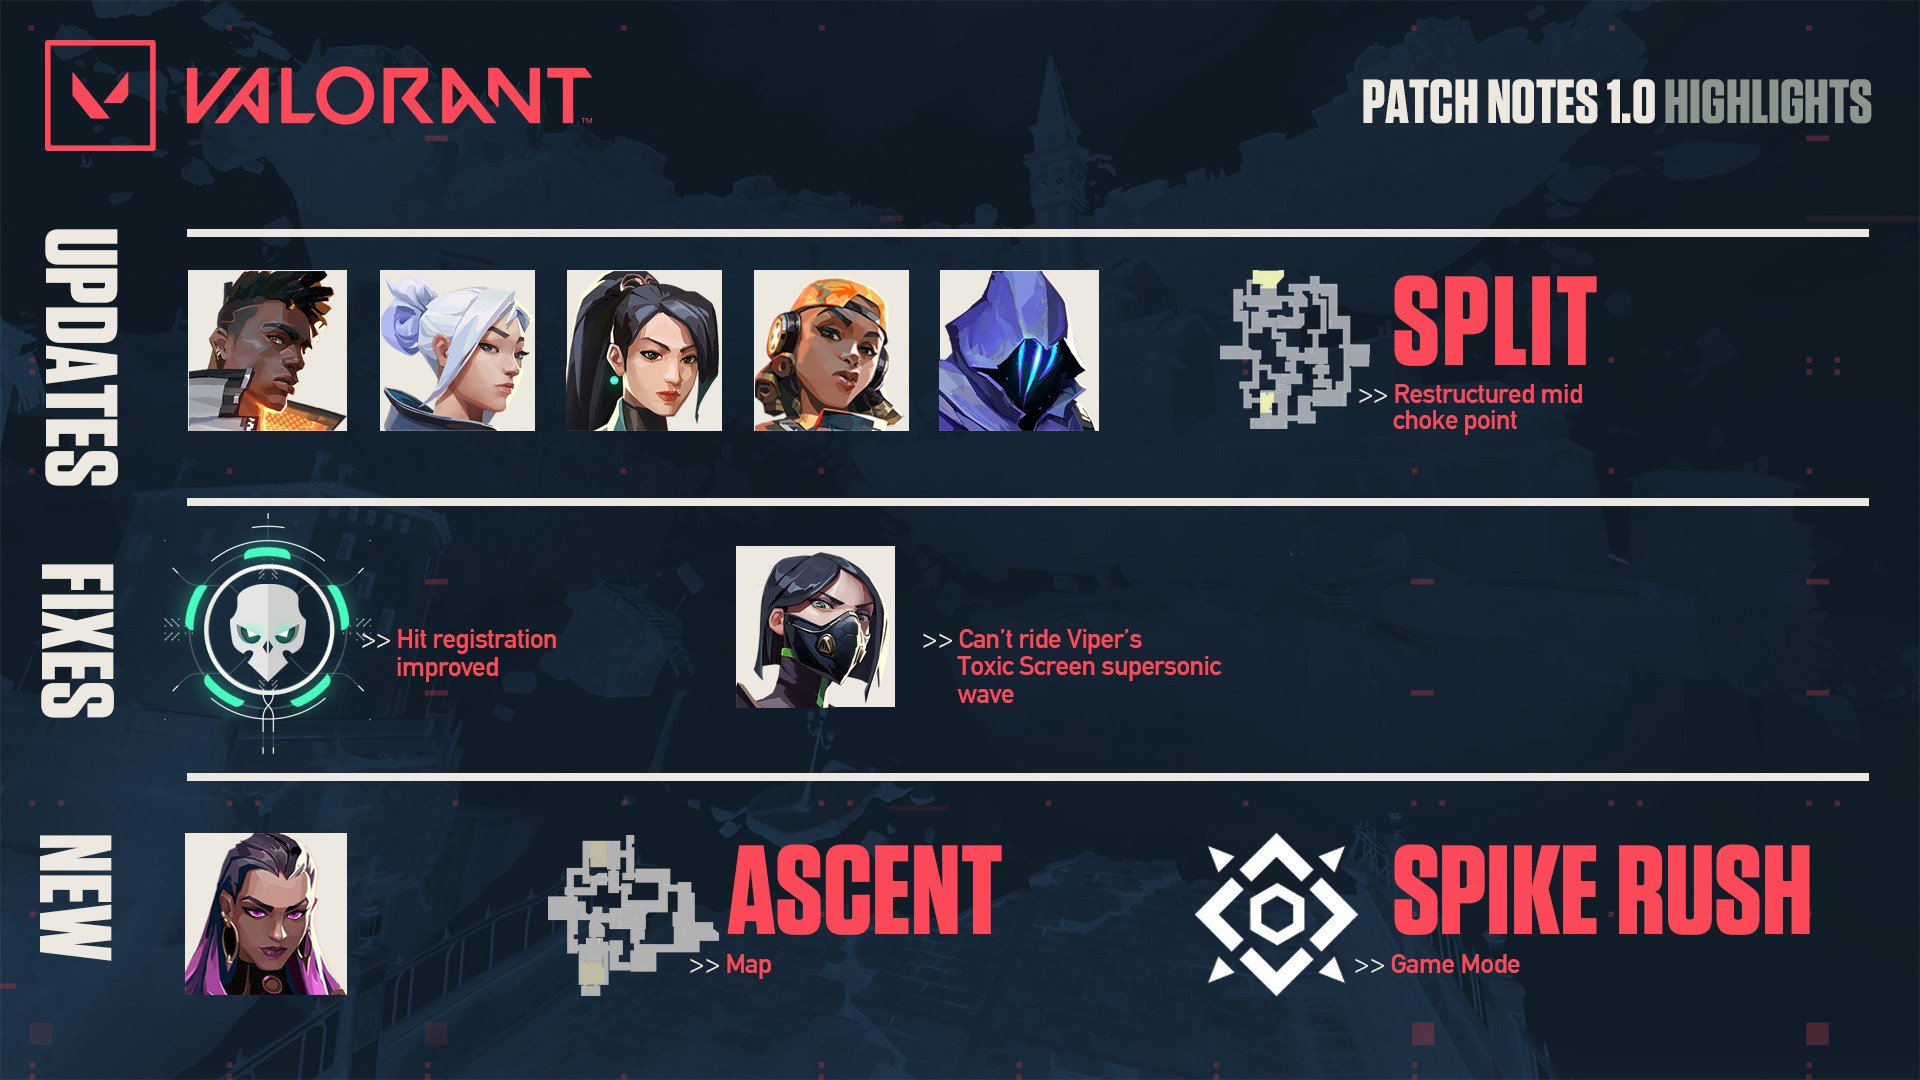 VALORANT Patch Notes Launch graphic